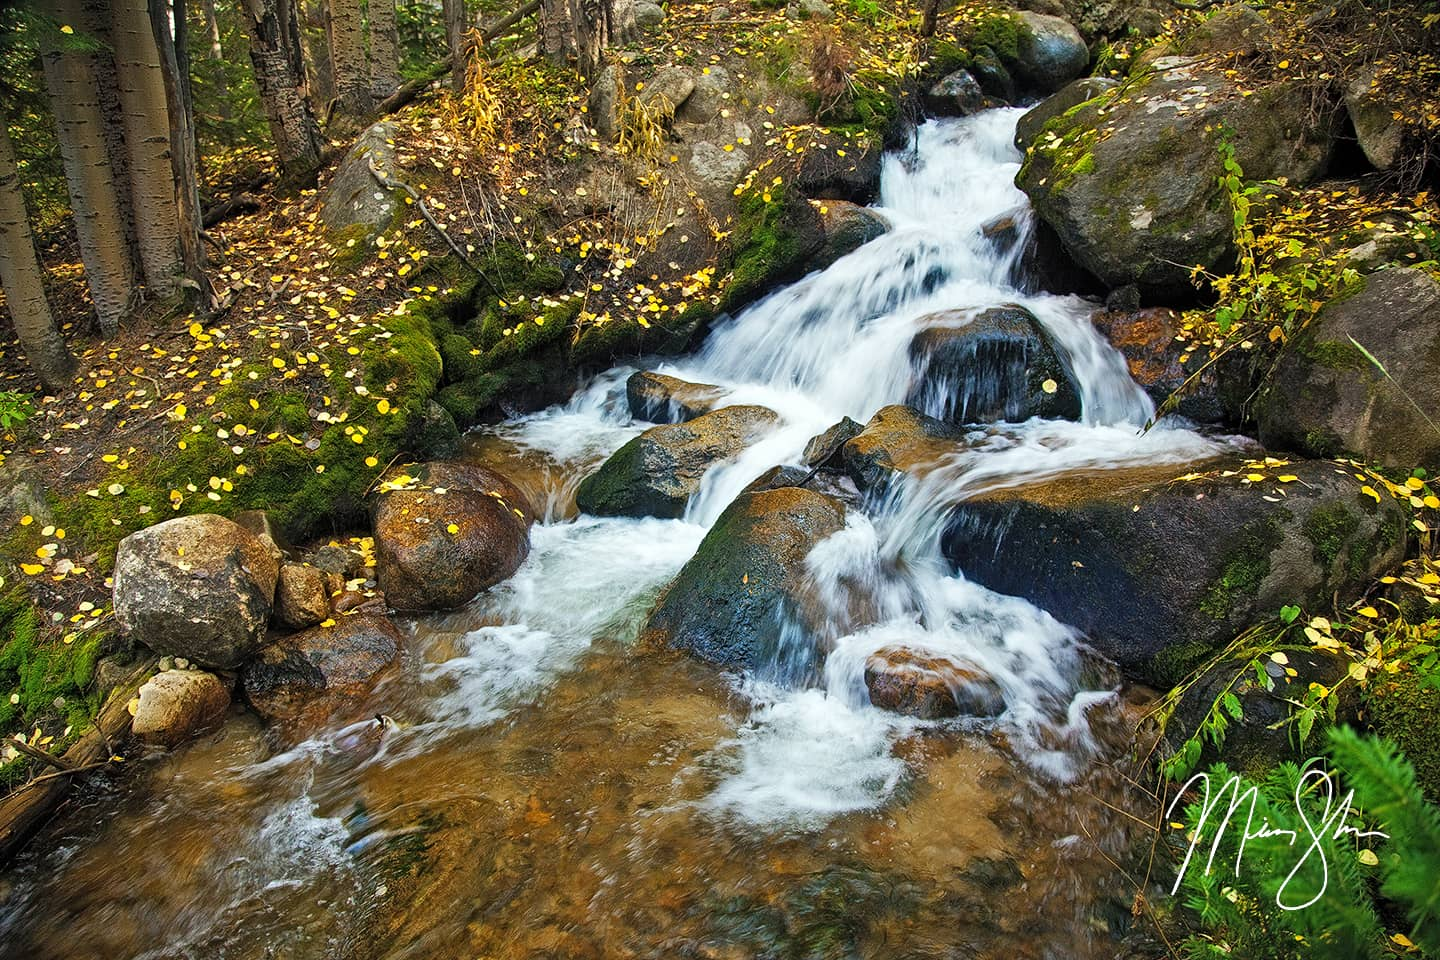 Boulder Brook Autumn Waterfalls - Boulder Brook, Rocky Mountain National Park, Estes Park, Colorado